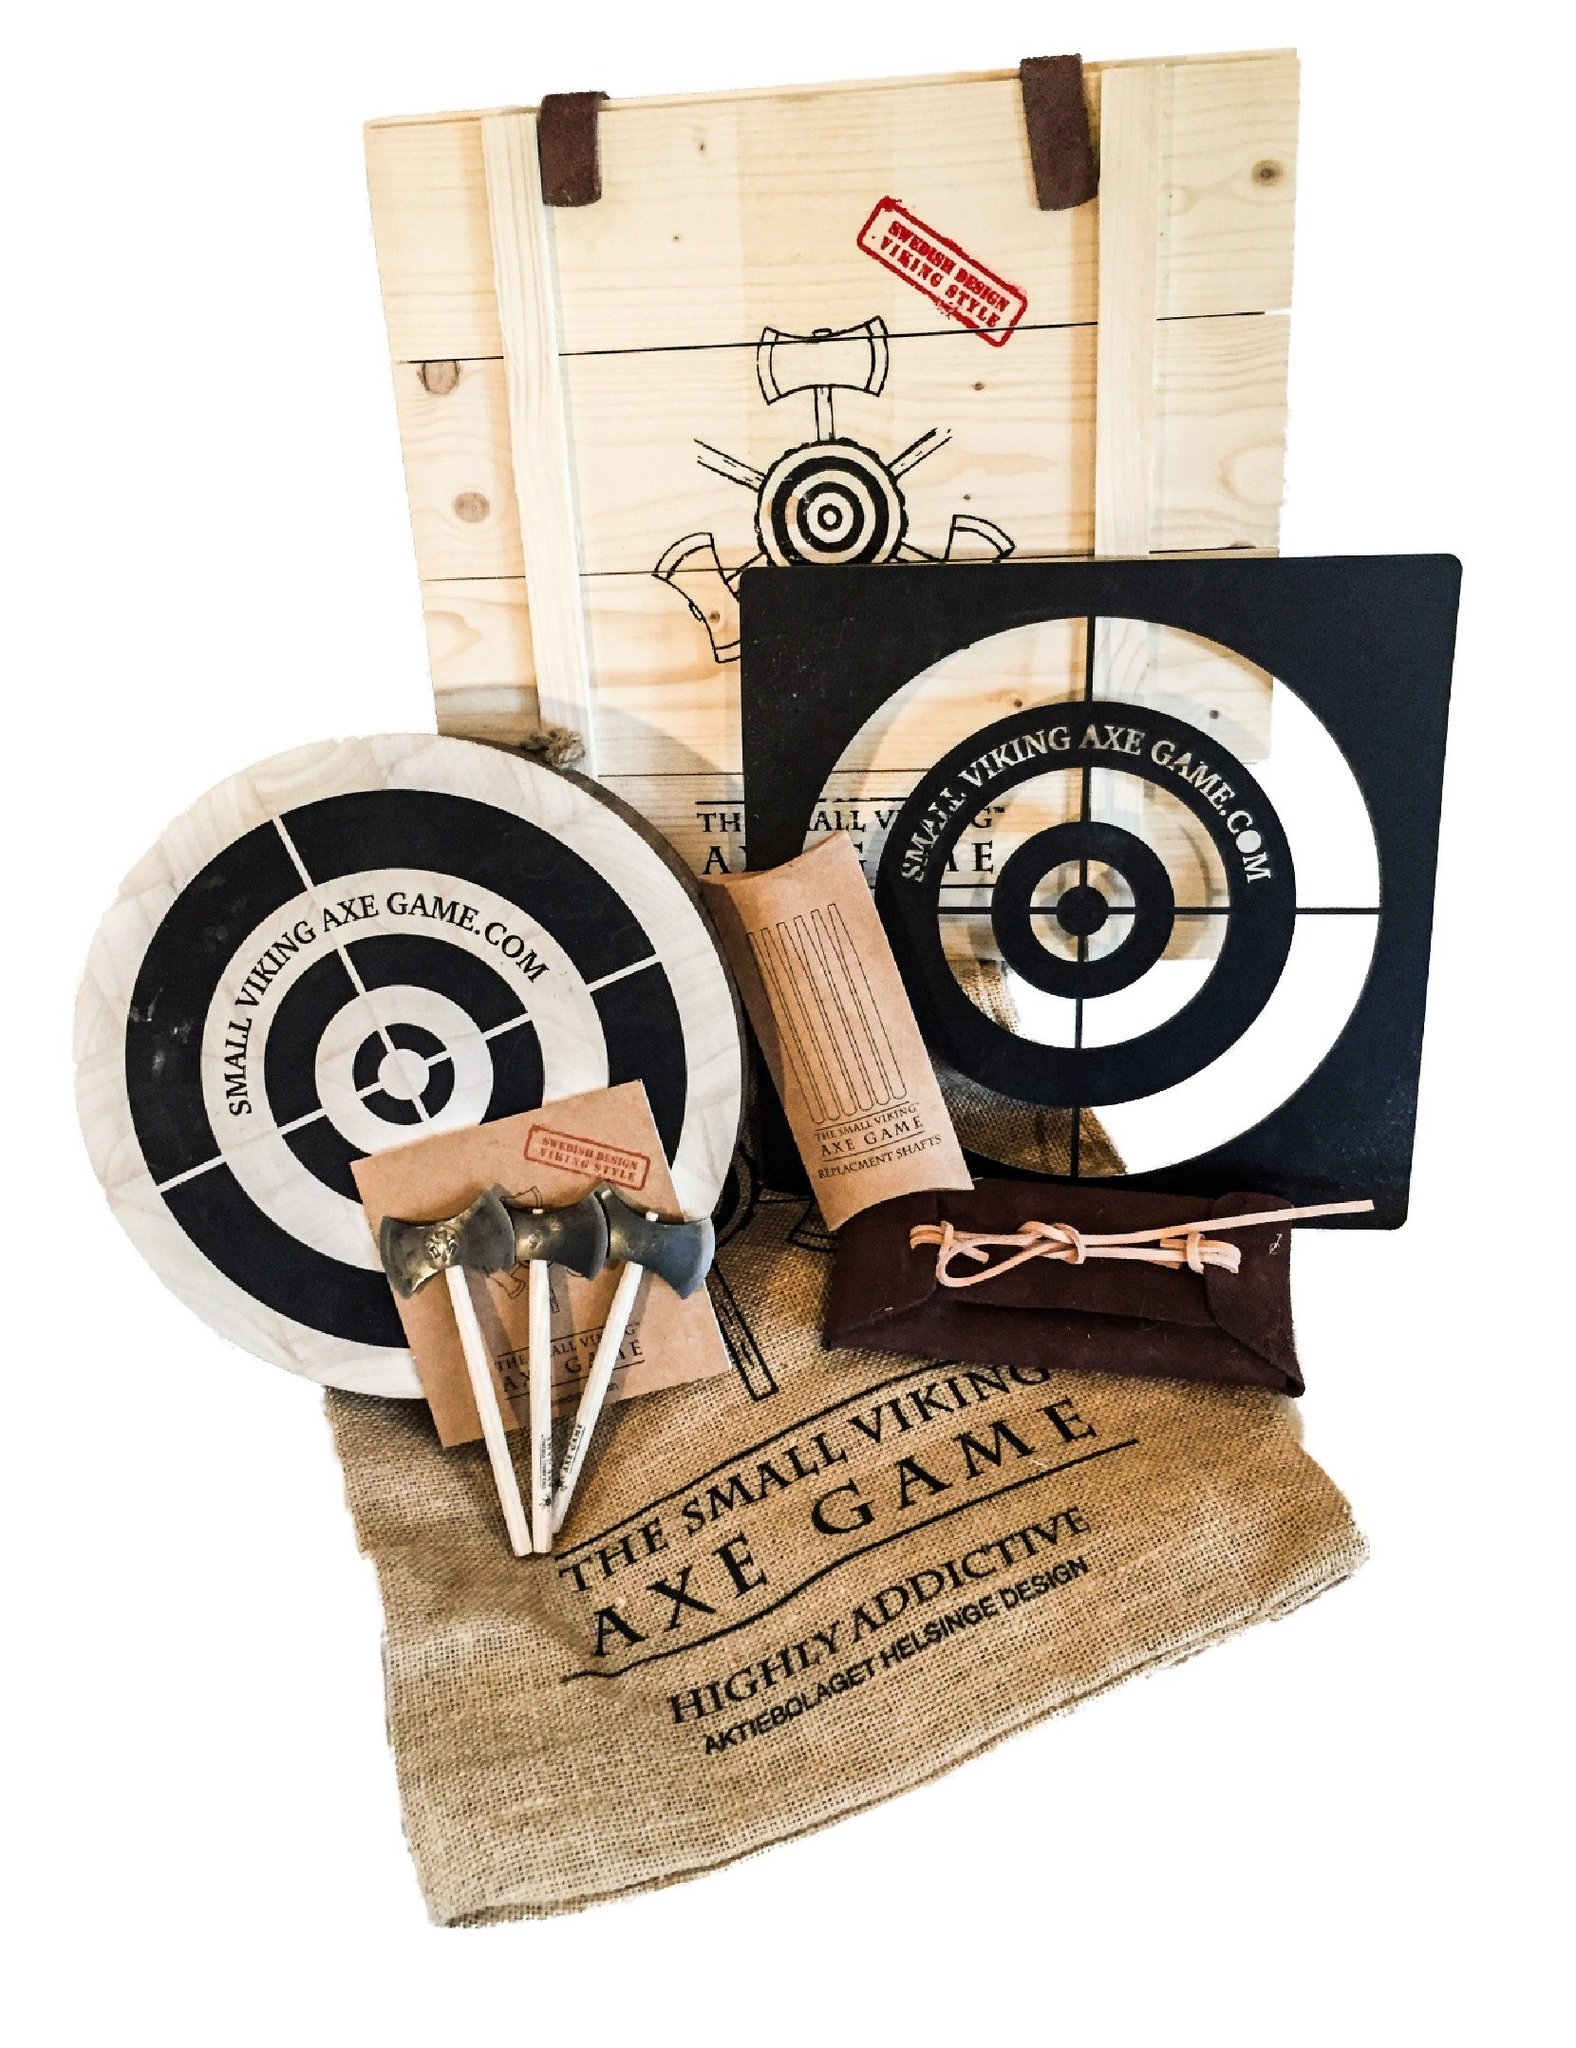 Small Viking Axe Game premium set